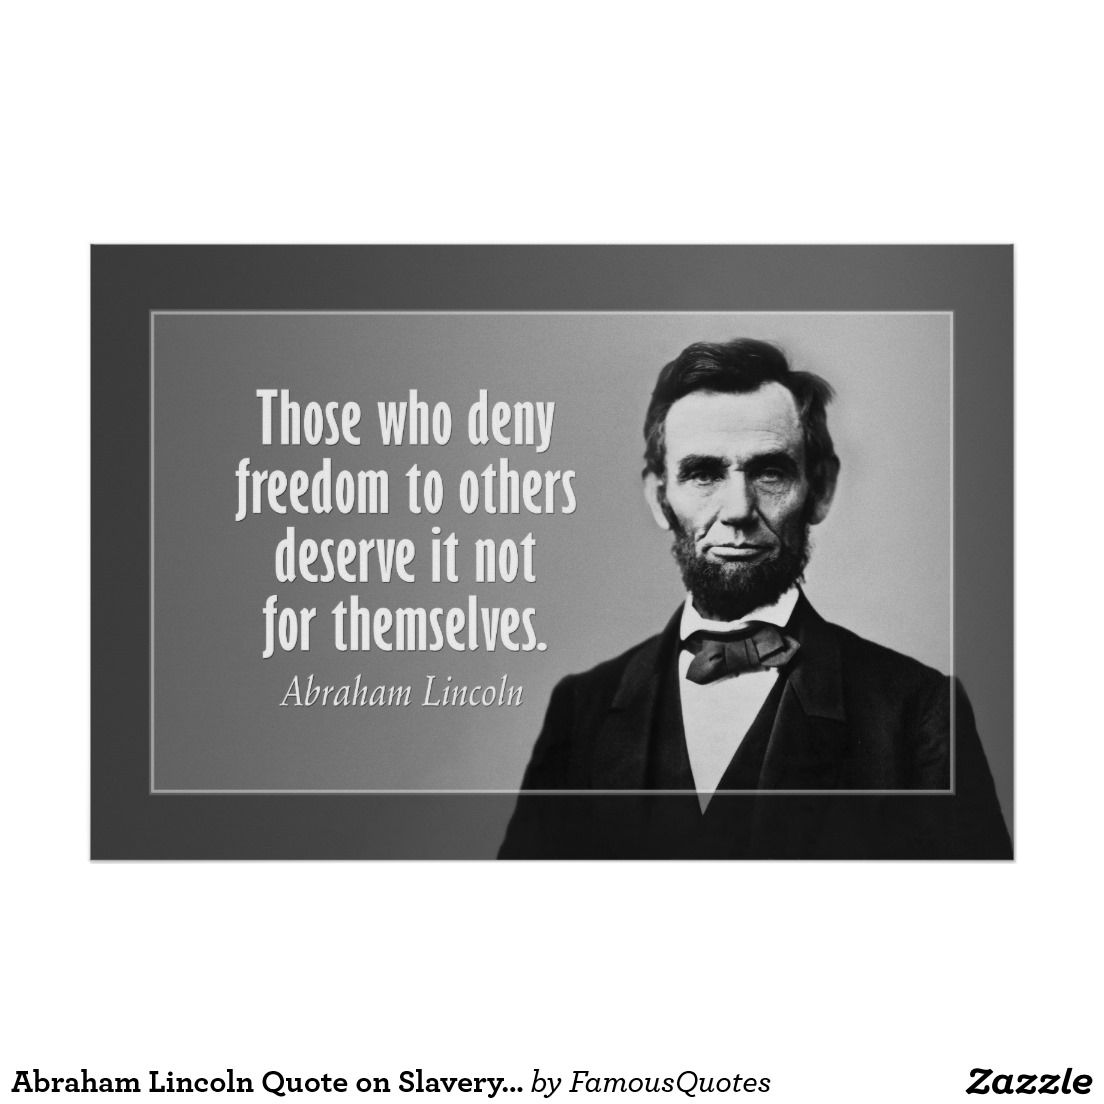 Abraham Lincoln Quote On Slavery And Freedom Poster